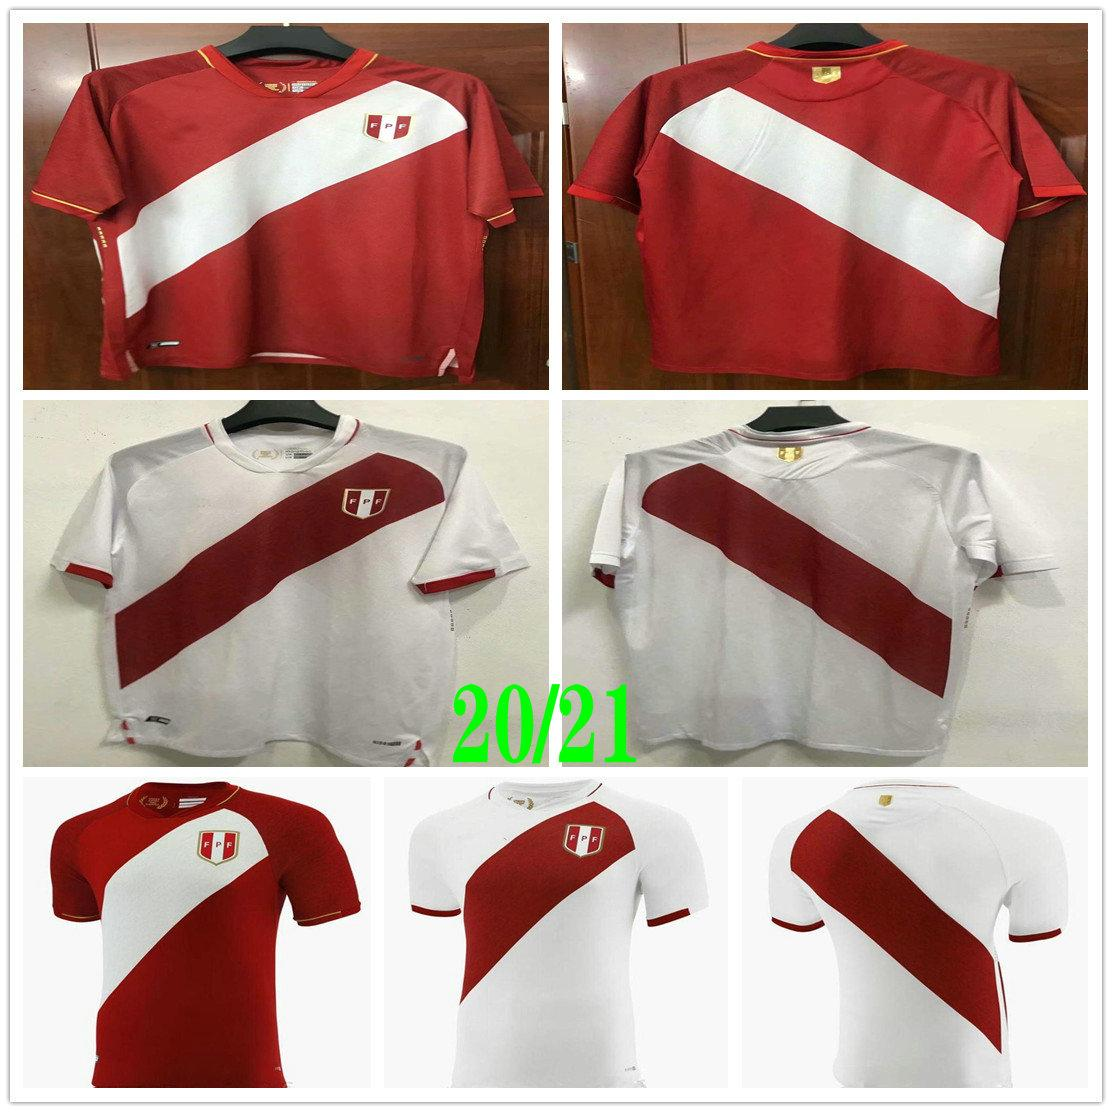 2021 2022 Peru Soccer Jerseys GUERRERO FARFAN CUEVA LAPADULA LORES Custom Perú camisetas de fútbol Home White Away Red Football Shirts